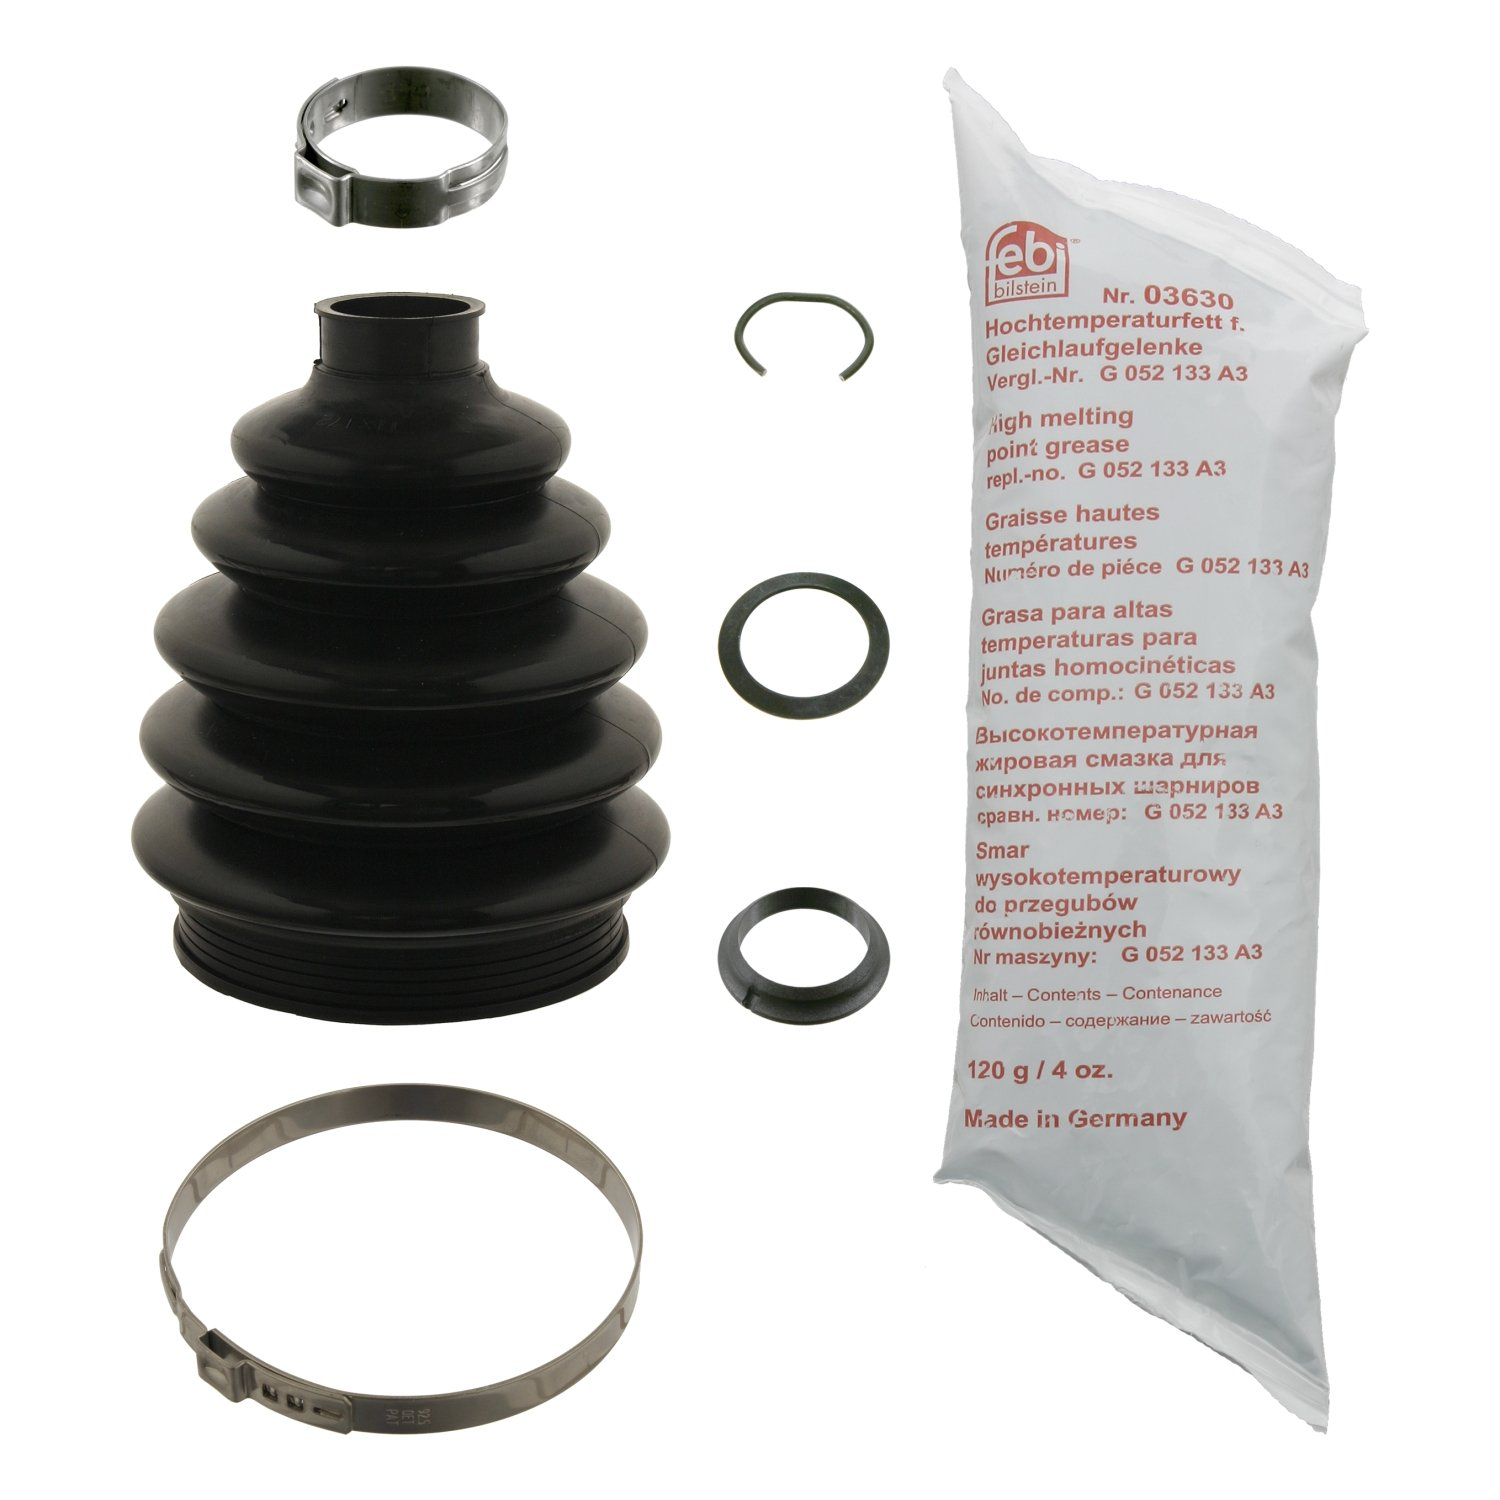 febi bilstein 29609 CV boot kit - Pack of 1